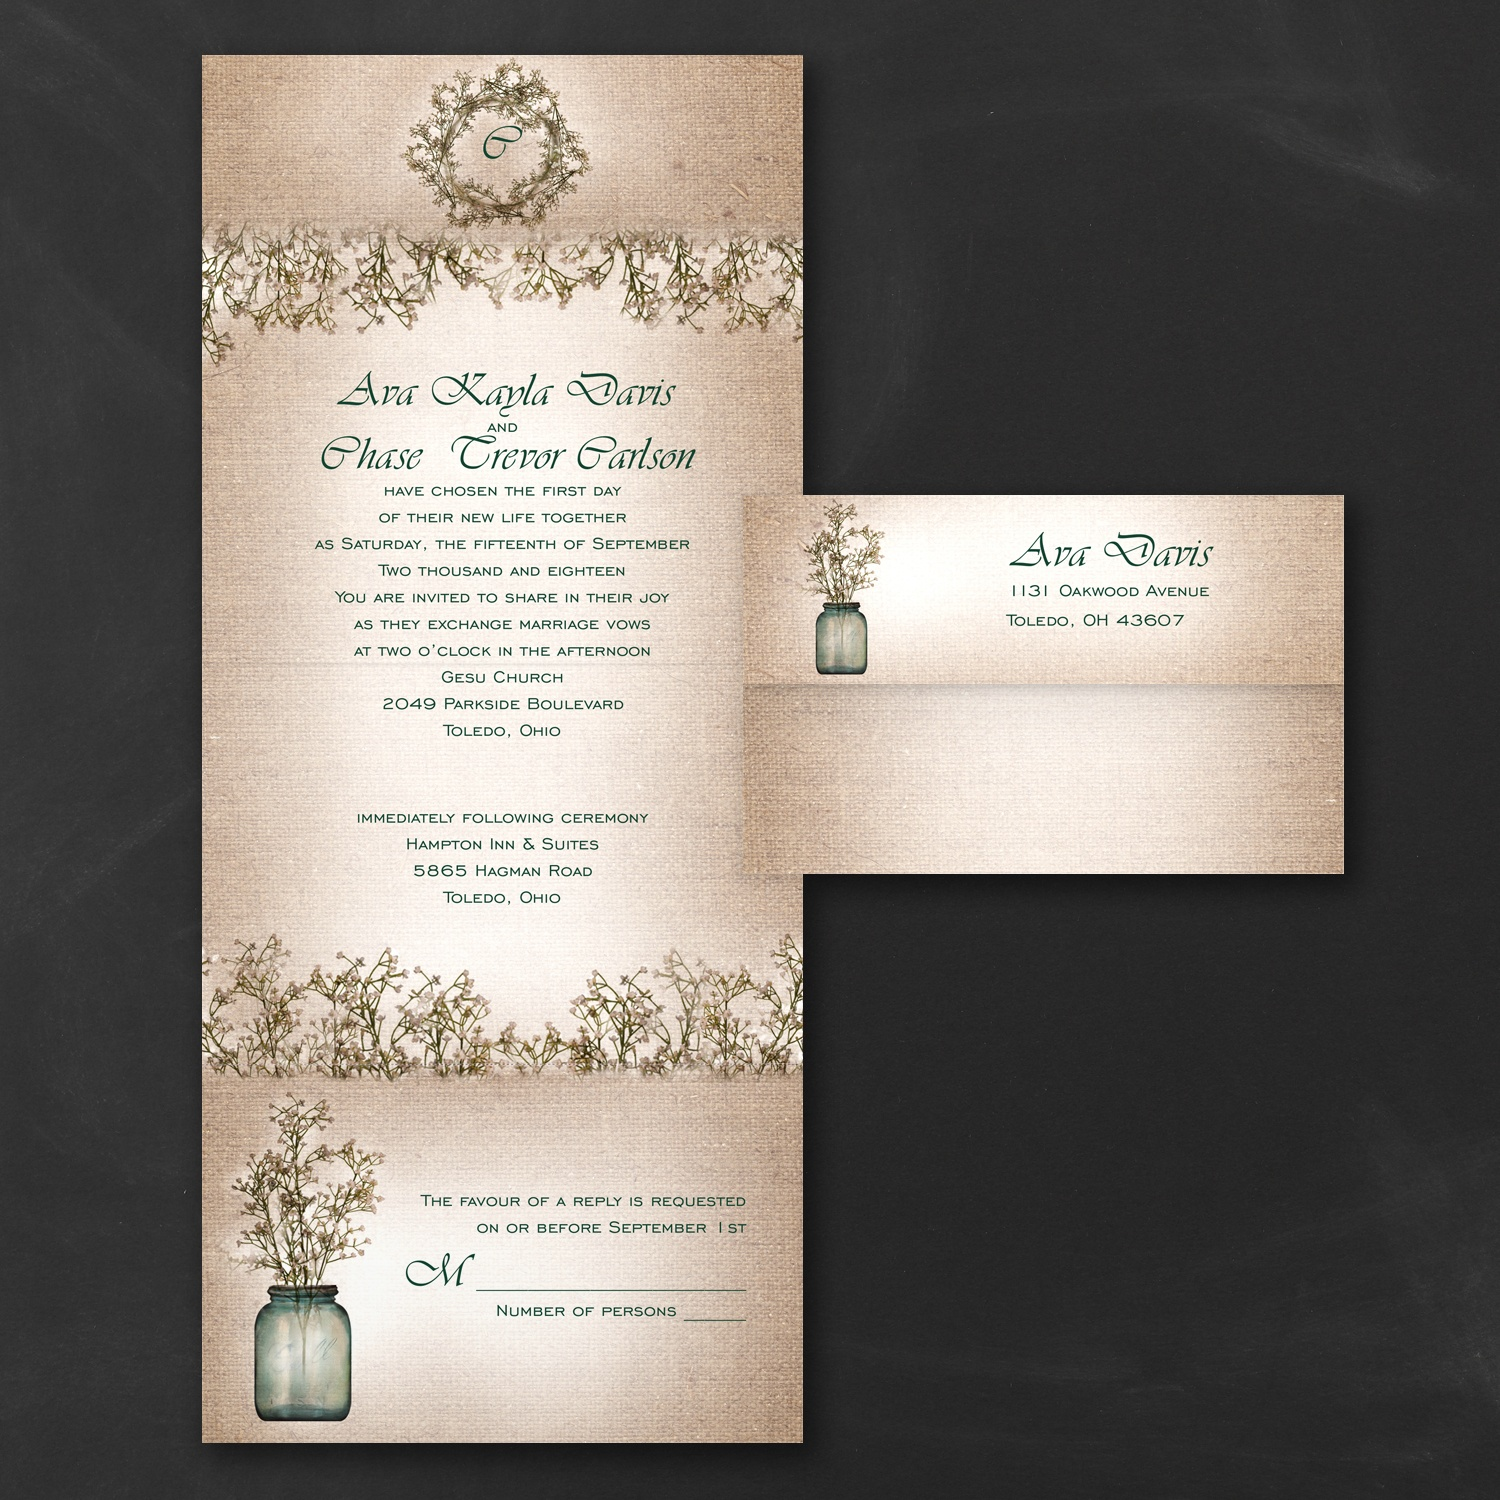 Invitations To A Wedding: Occasions To Blog: Budget Friendly Wedding Invitations